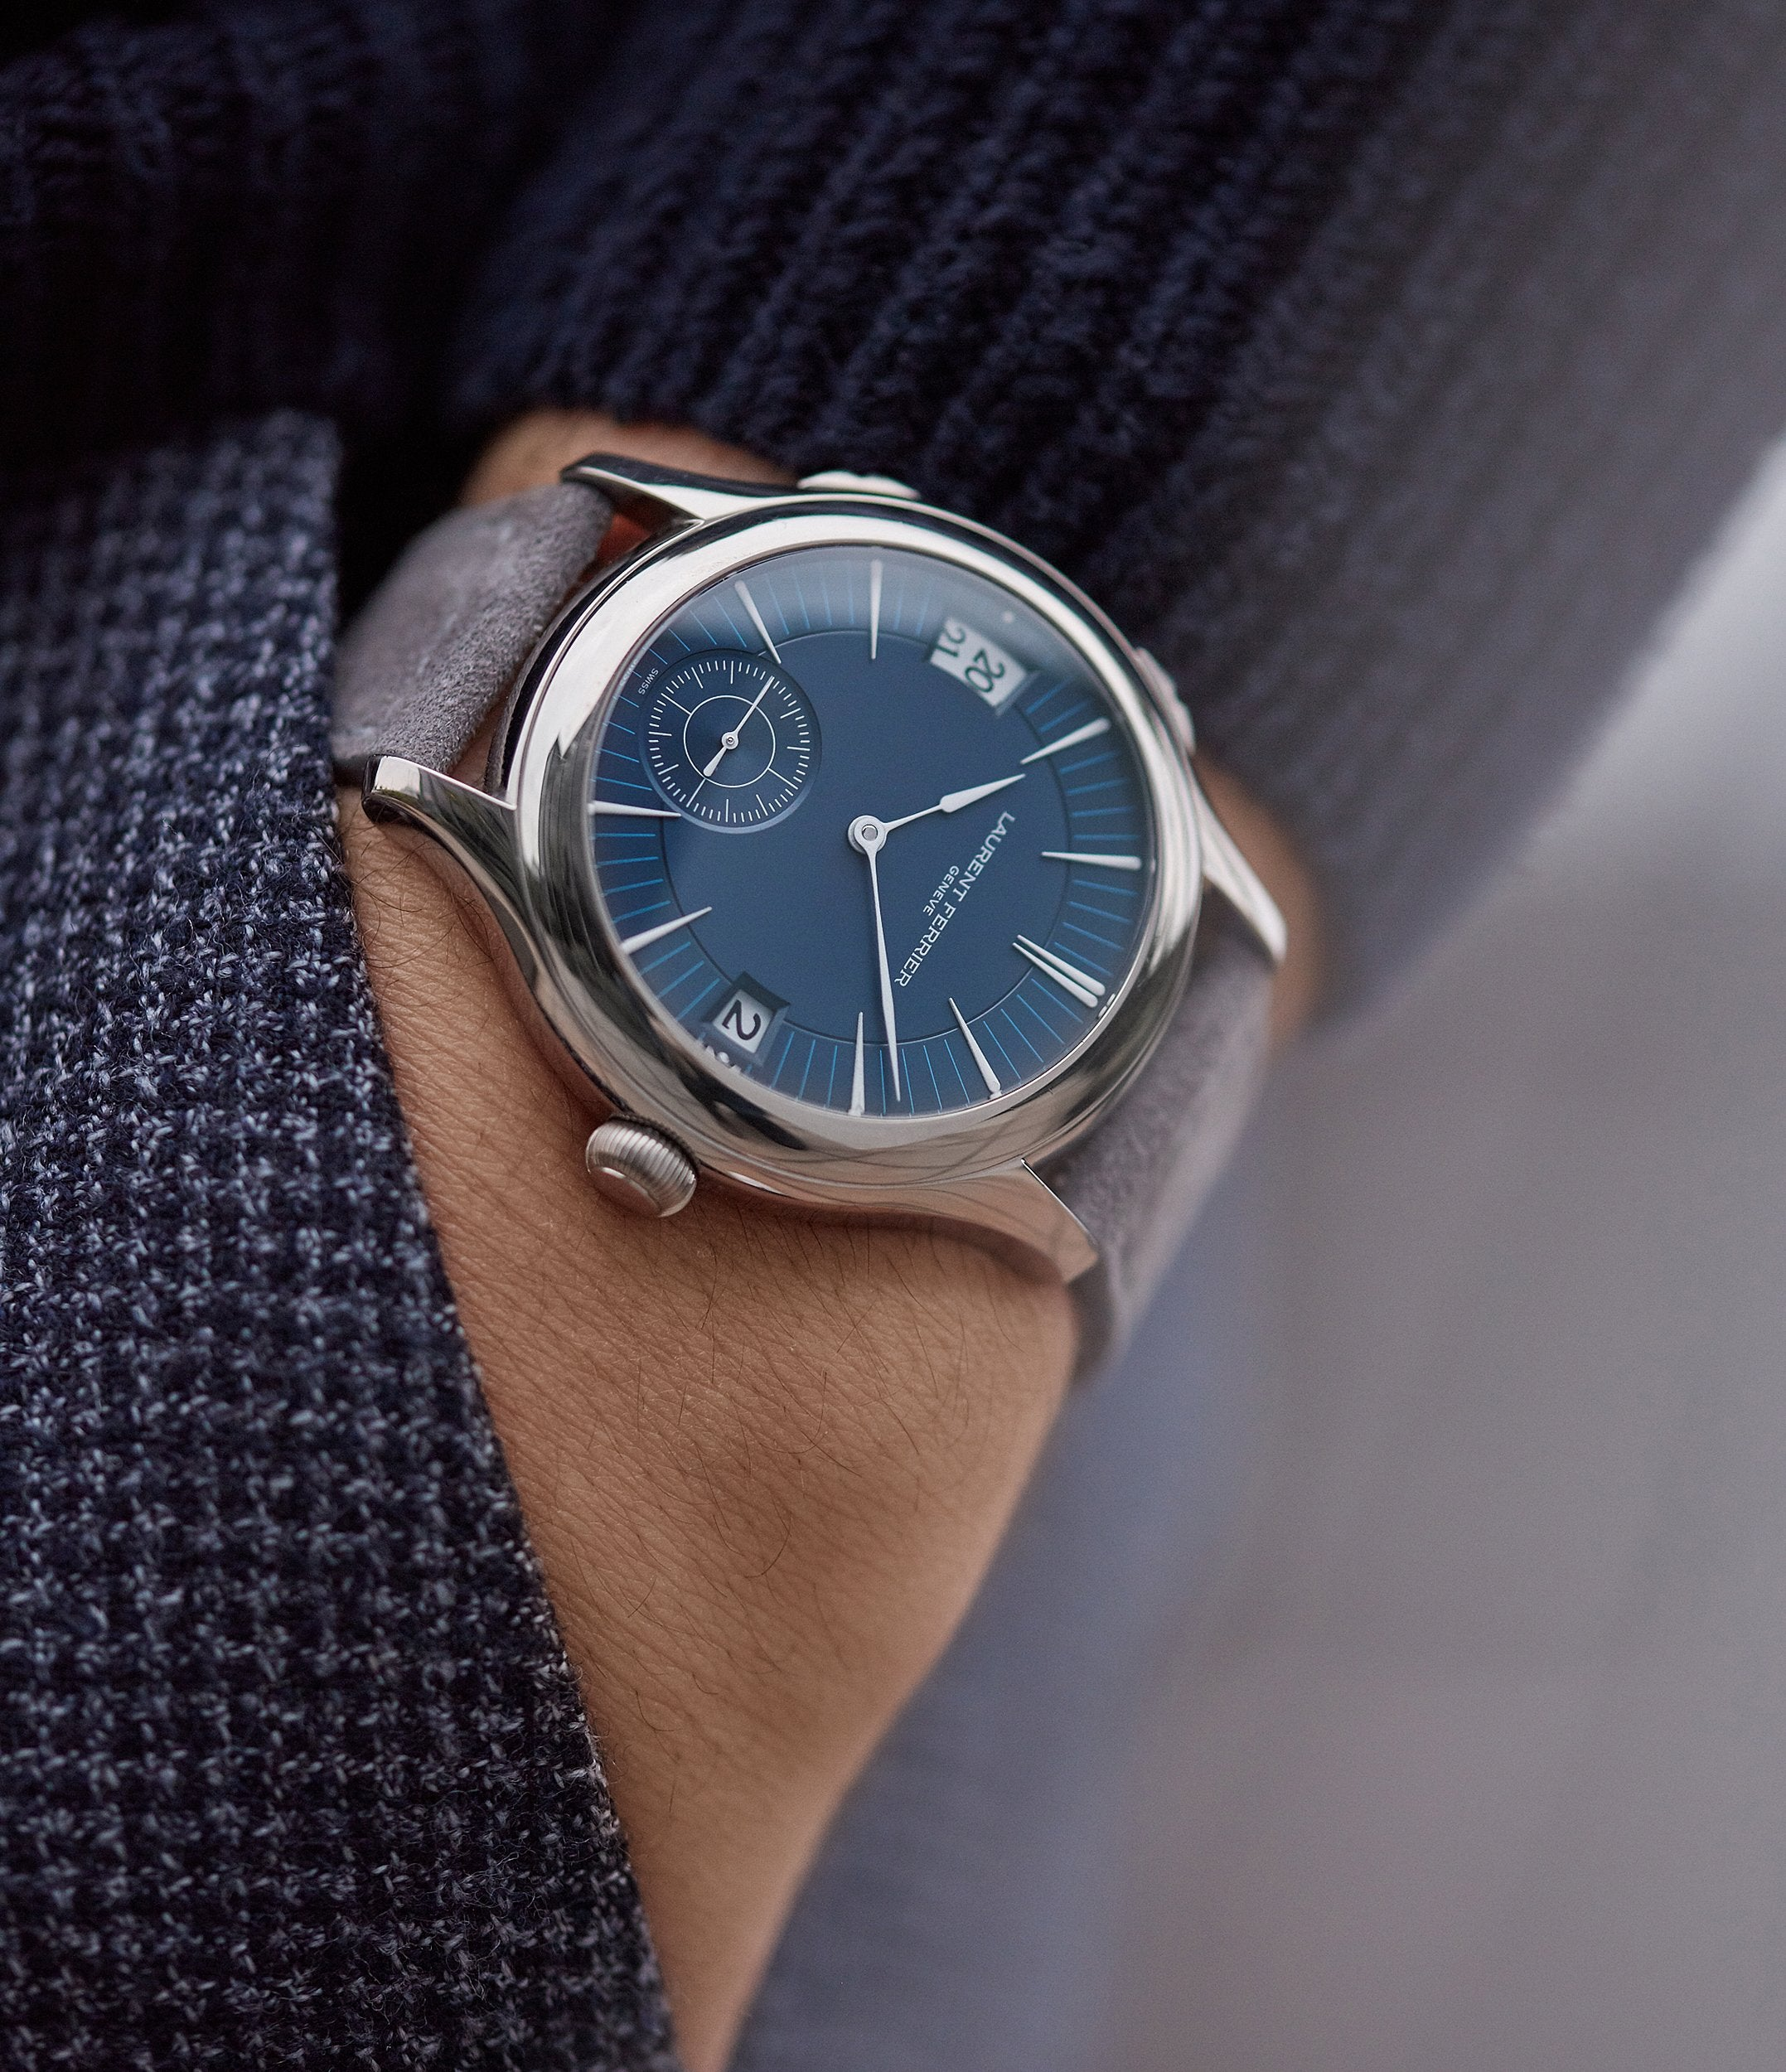 men's luxury wristwatch Laurent Ferrier Galet Traveller Micro-rotor blue dial pre-owned watch for sale online A Collected Man London UK specialist independent watchmakers